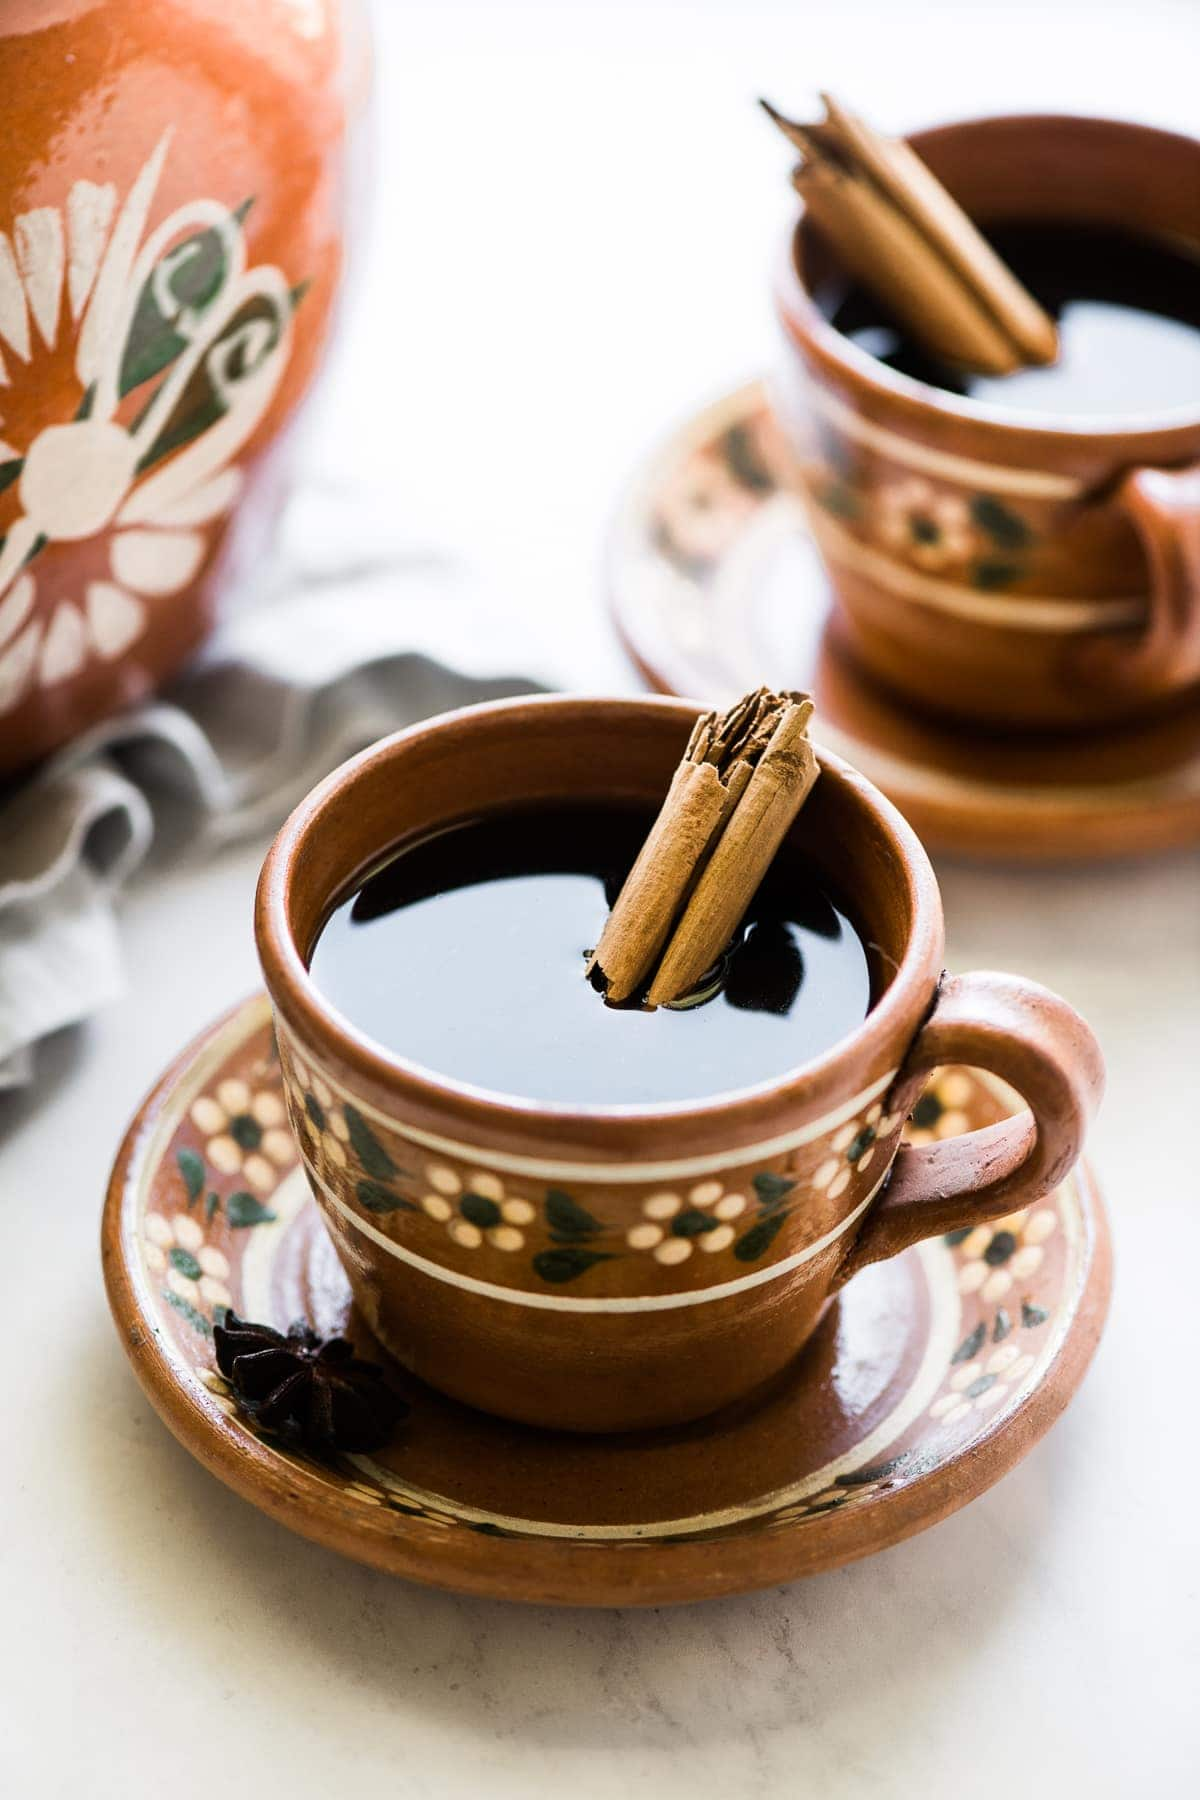 Cafe de olla (traditional Mexican coffee) in a mug with a cinnamon stick.